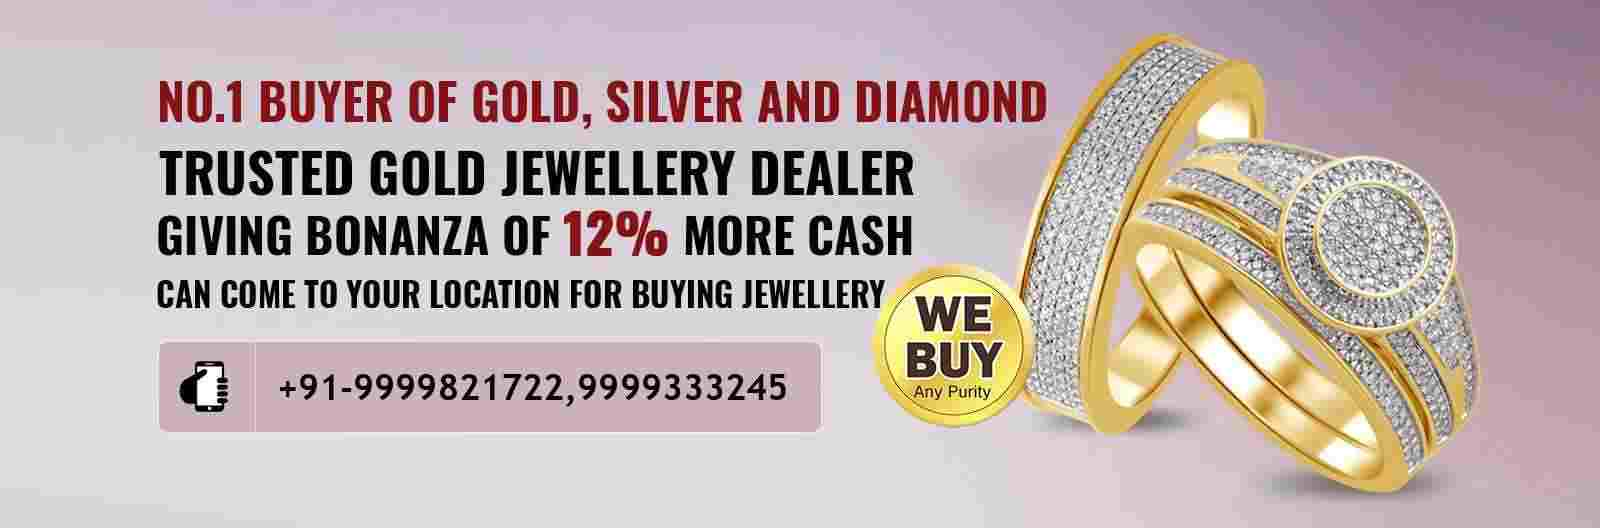 Current Gold Rate Rs 38,000/10gm Today Silver Rs 42,000 (1Kg